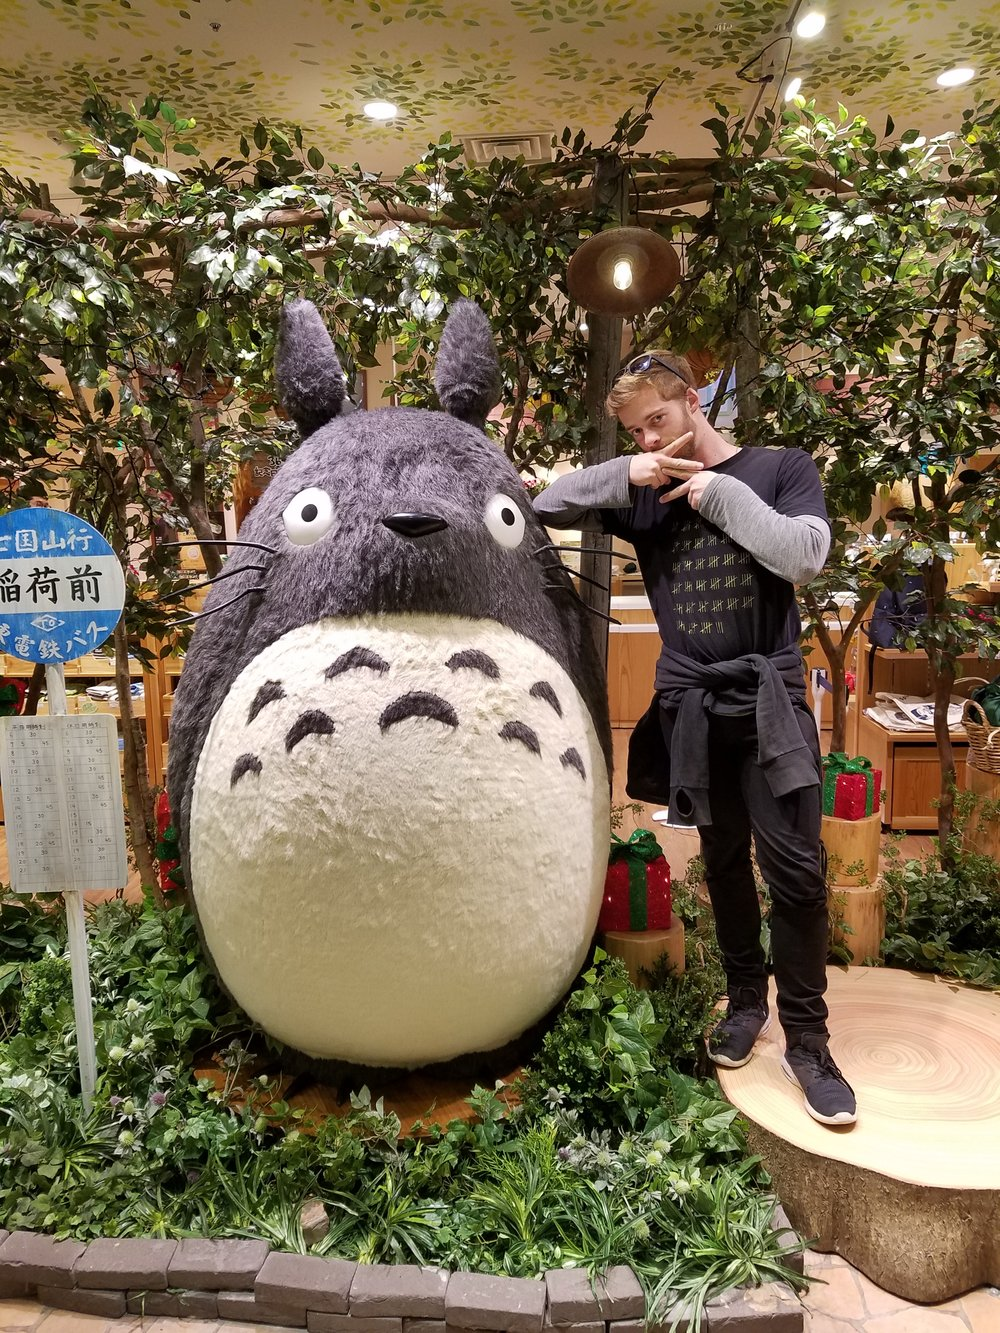 Martin -huge Ghibli fan!